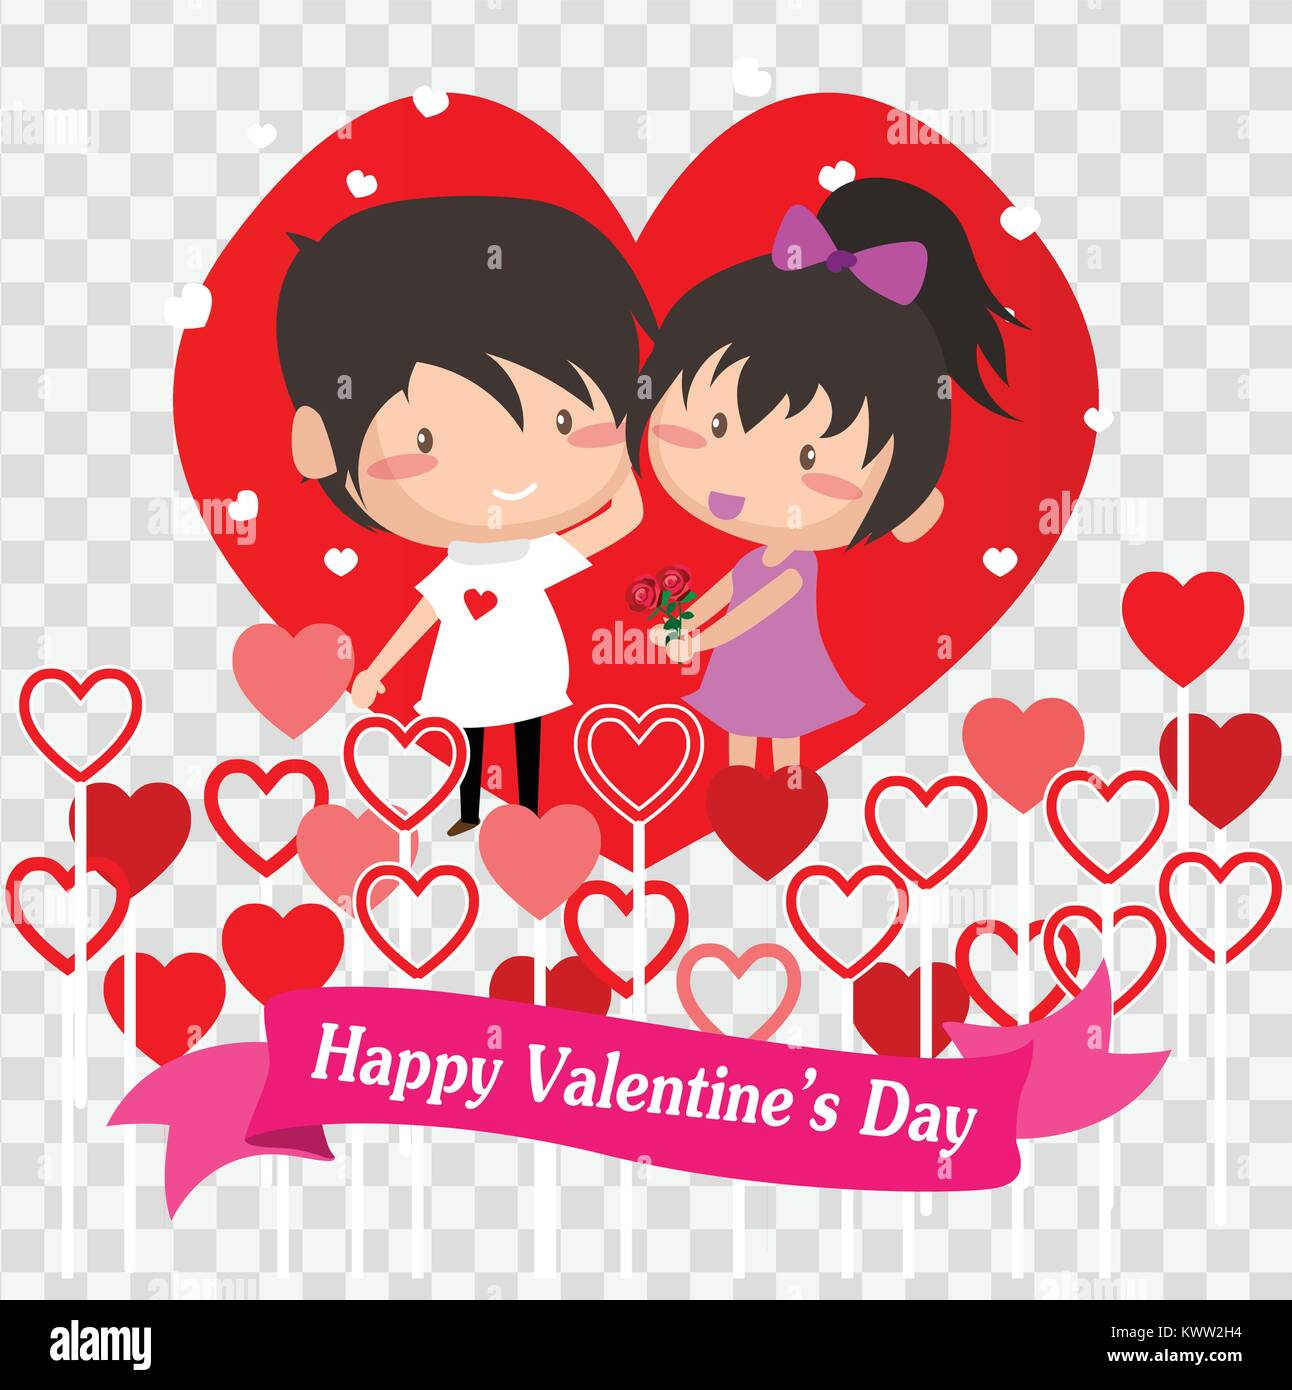 Boy And Girl Love For Valentine S Day On Happy Valentine S Day And